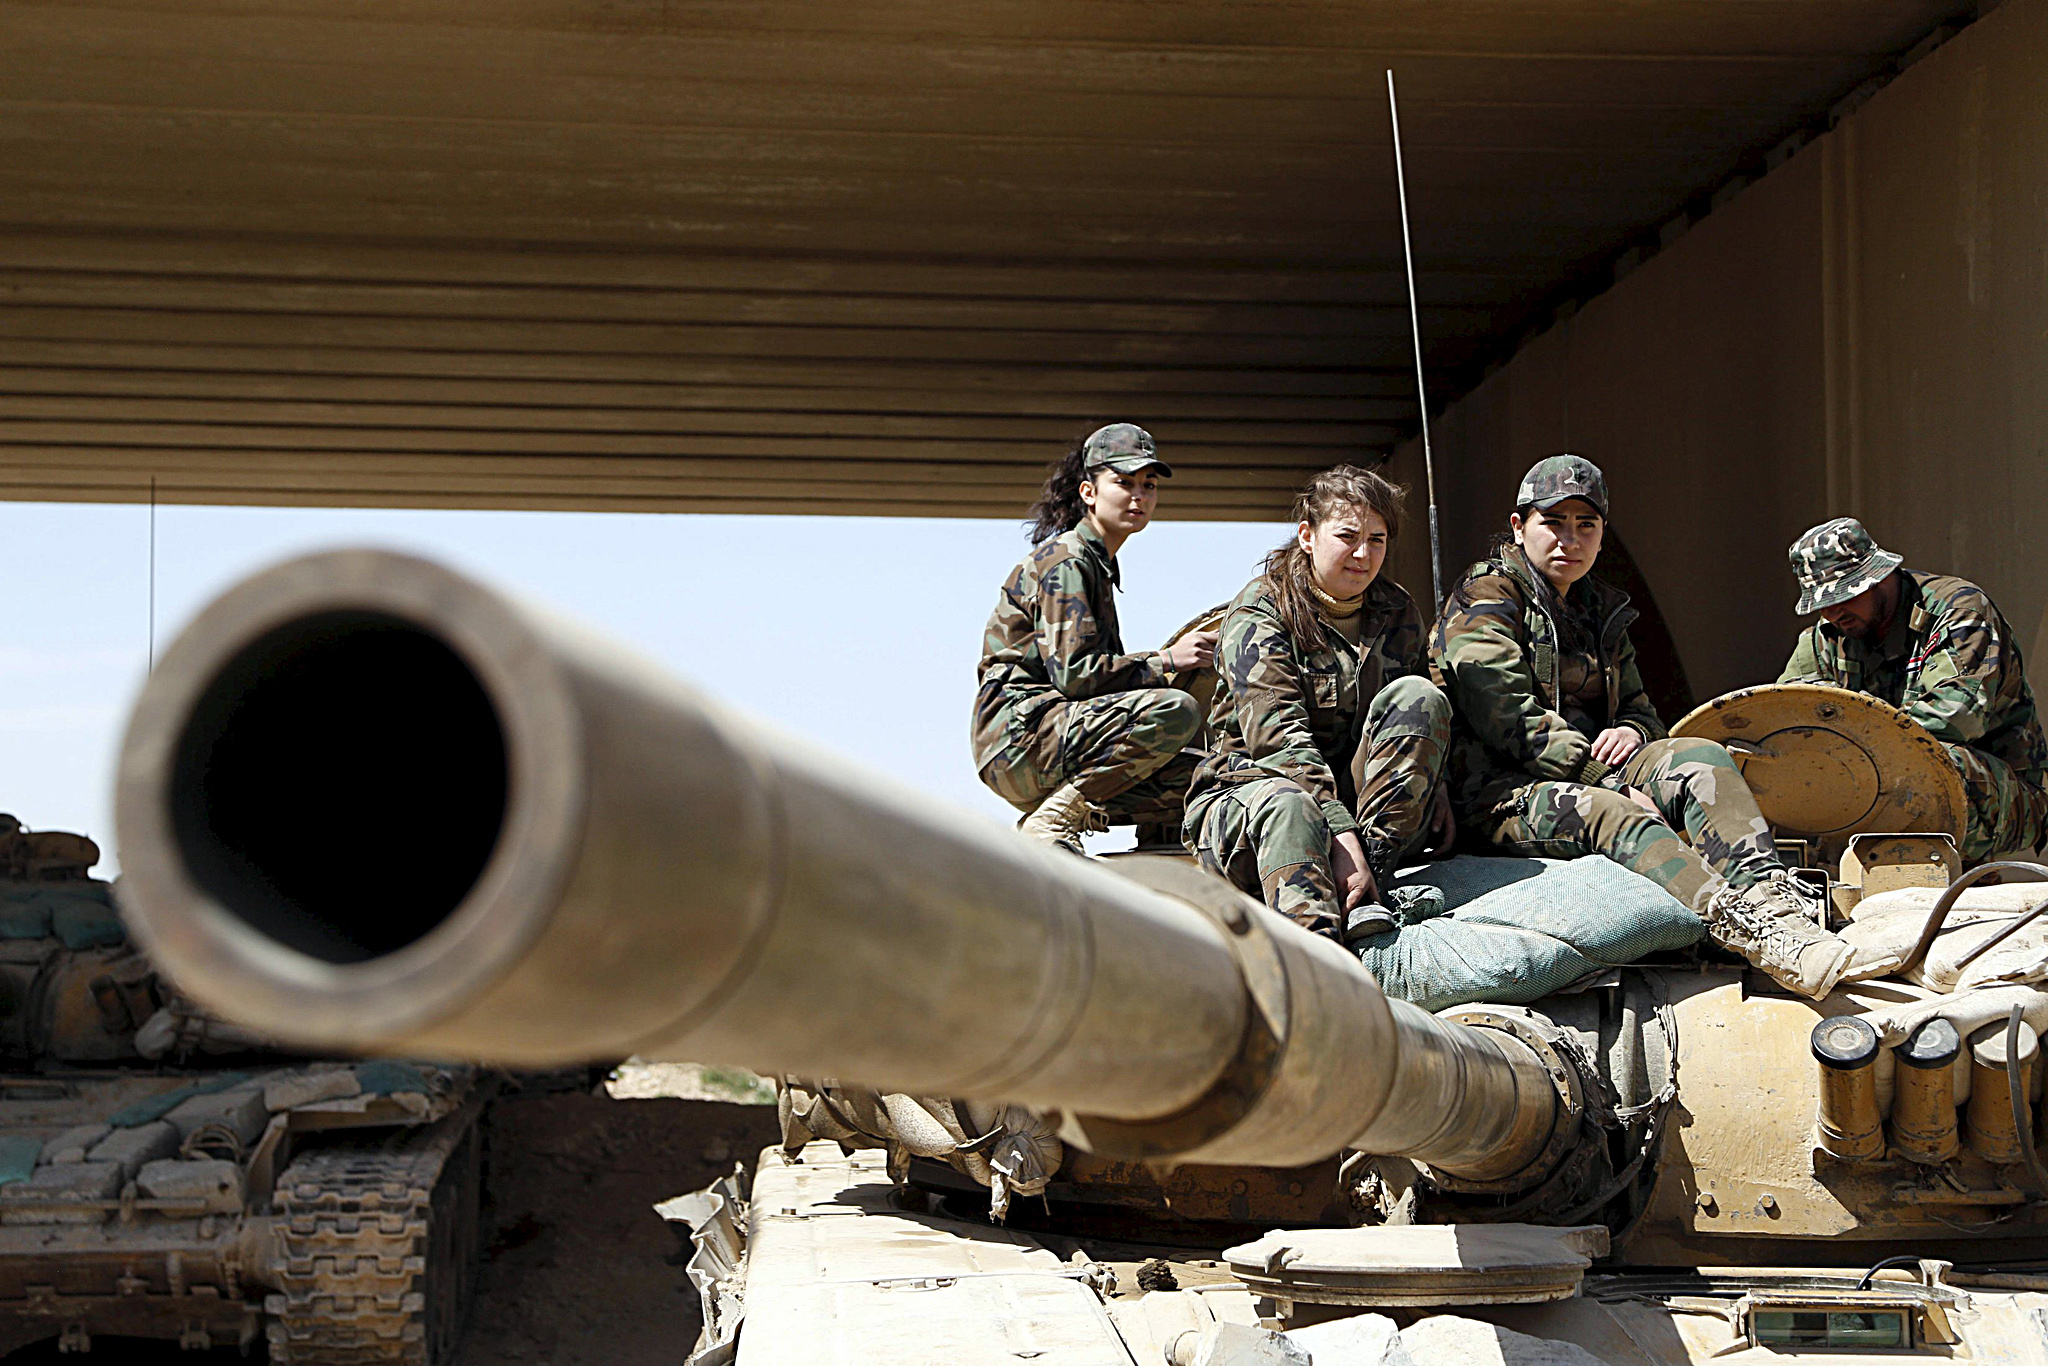 Members of a Female Commando Battalion which is part of the Syrian Army, sit atop of a tank in the government-controlled area of Jobar...Members of a Female Commando Battalion which is part of the Syrian Army, sit atop of a tank in the government-controlled area of Jobar, a suburb of Damascus March 19, 2015. This Battalion consists of several hundred female fighters who have had military training and carry out combat duties. Picture taken during a Syrian Army organised trip. REUTERS/Omar Sanadiki